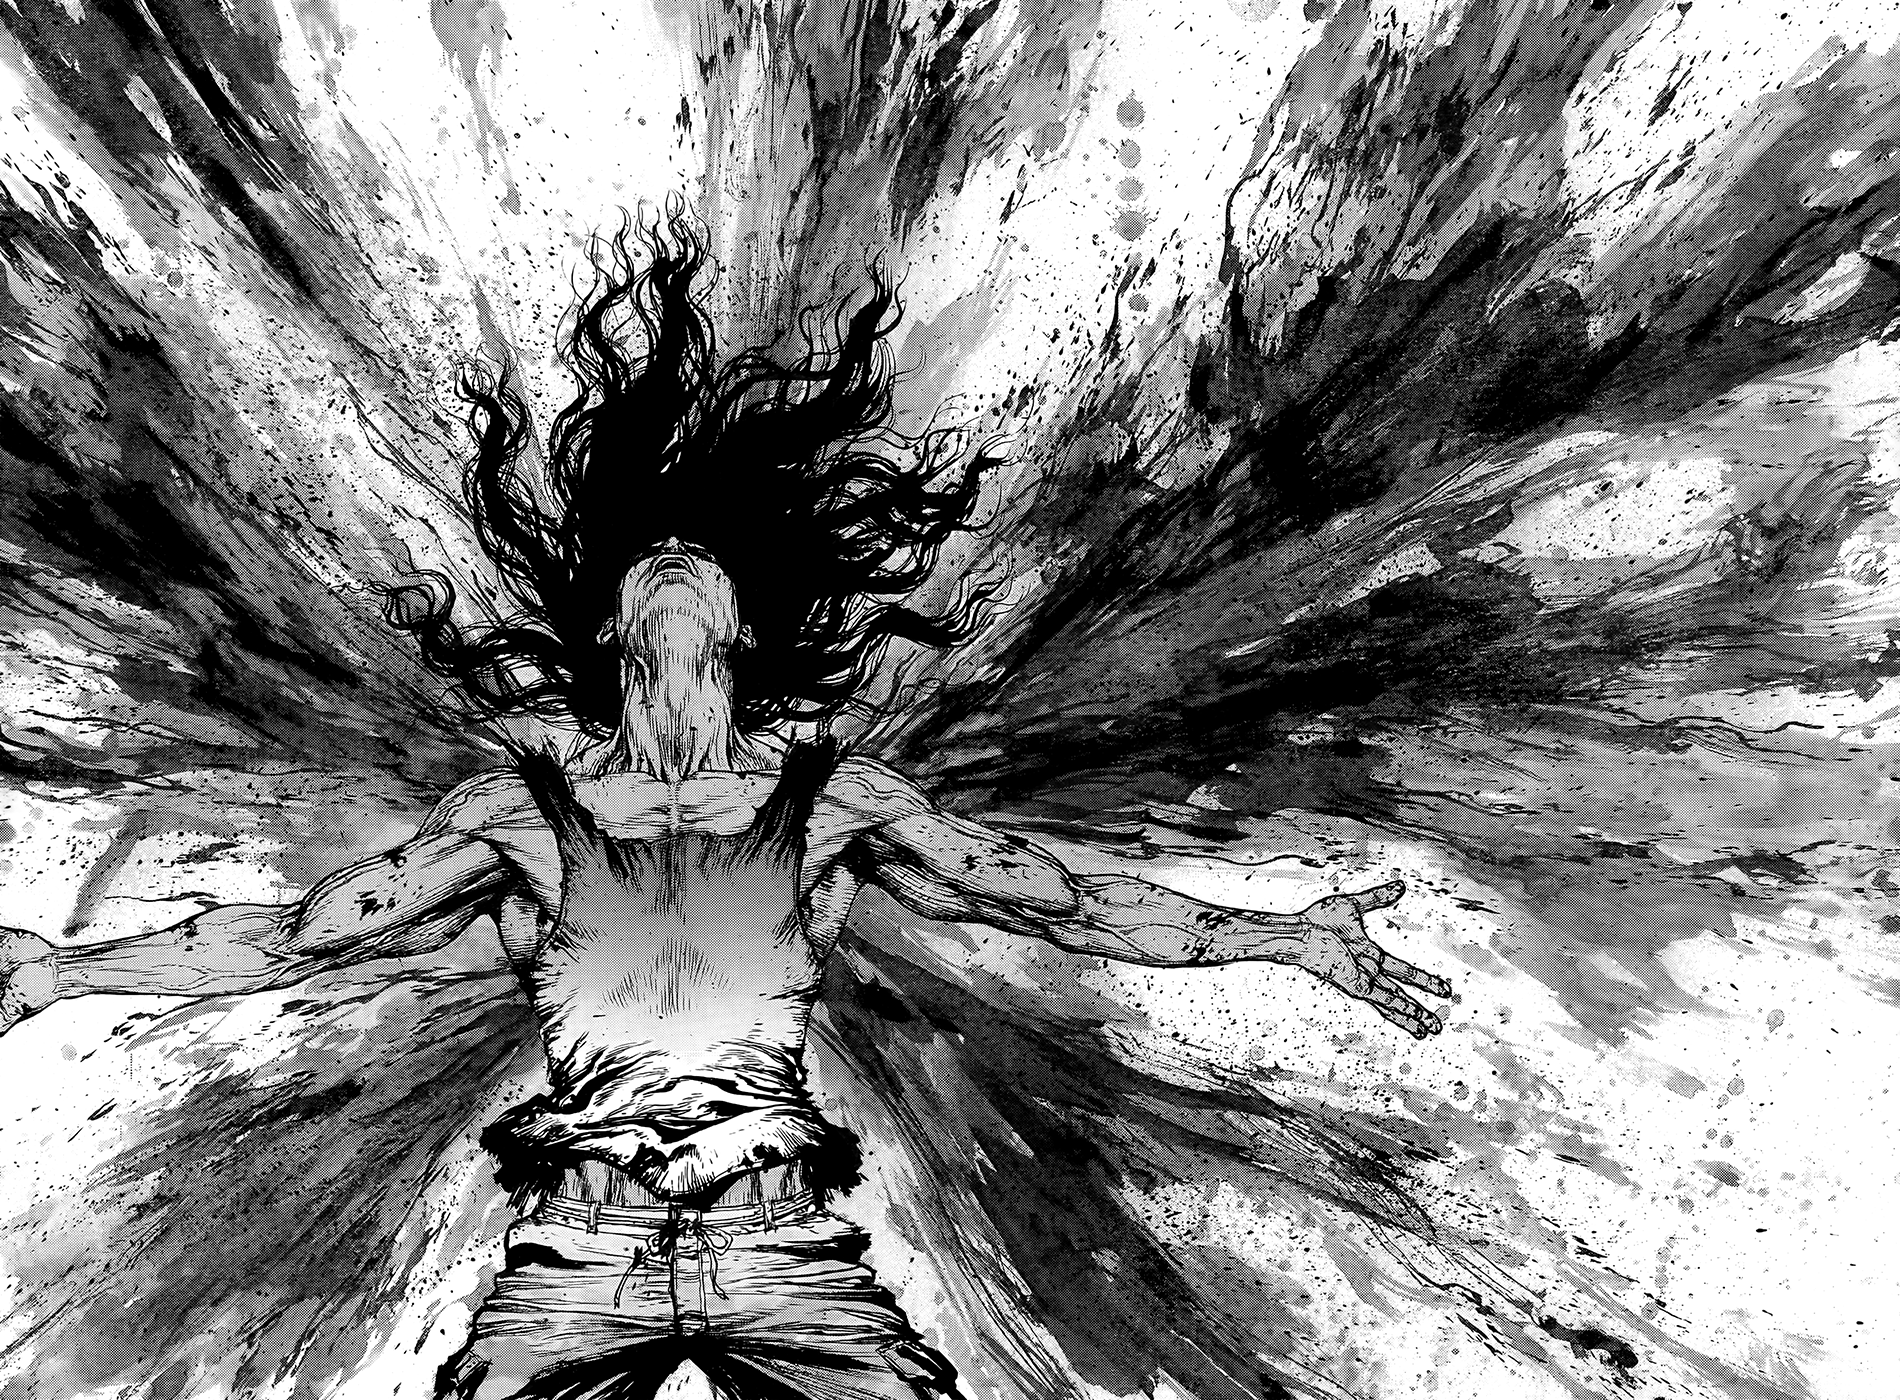 Black & White Wallpaper and Background Image | 1900x1400 | ID:872417 ...